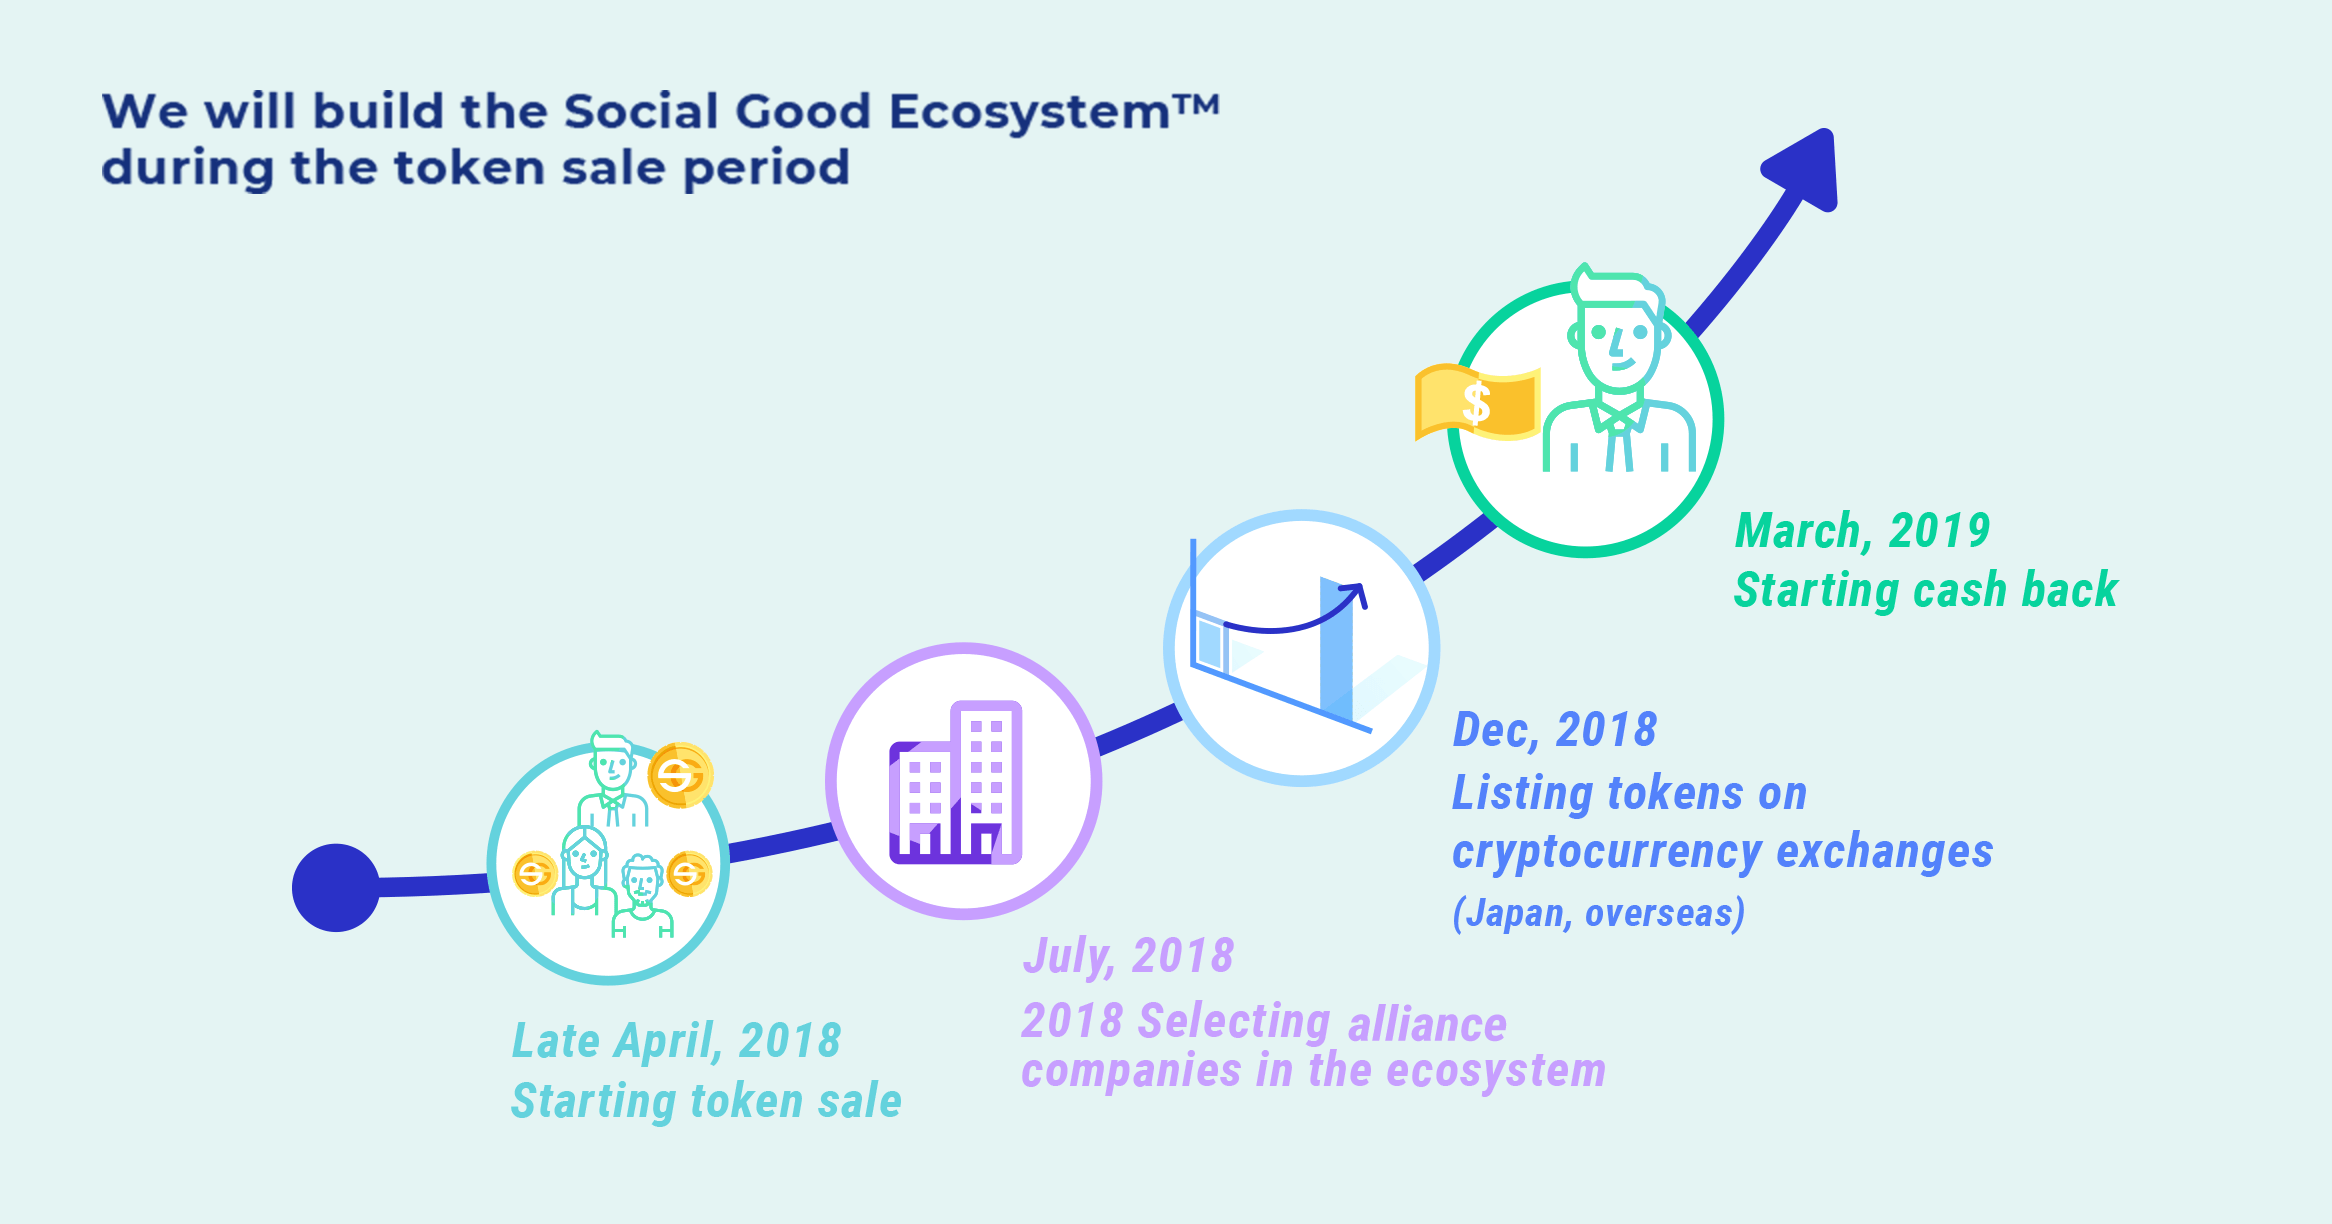 We will build the Social Good Ecosystem™ during the token sale period 						Late April 2018	Start of token sales (consumer participation) 						July 2018 Inviting companies to participate (companies to join at any time, announcement of considerations of joining companies as needed) 						Late December 2018	Listing on exchanges (Japan, overseas) 						March 2019 Cash Back payments start (addition of joined companies at any time, announcement of considerations of joining companies as needed)